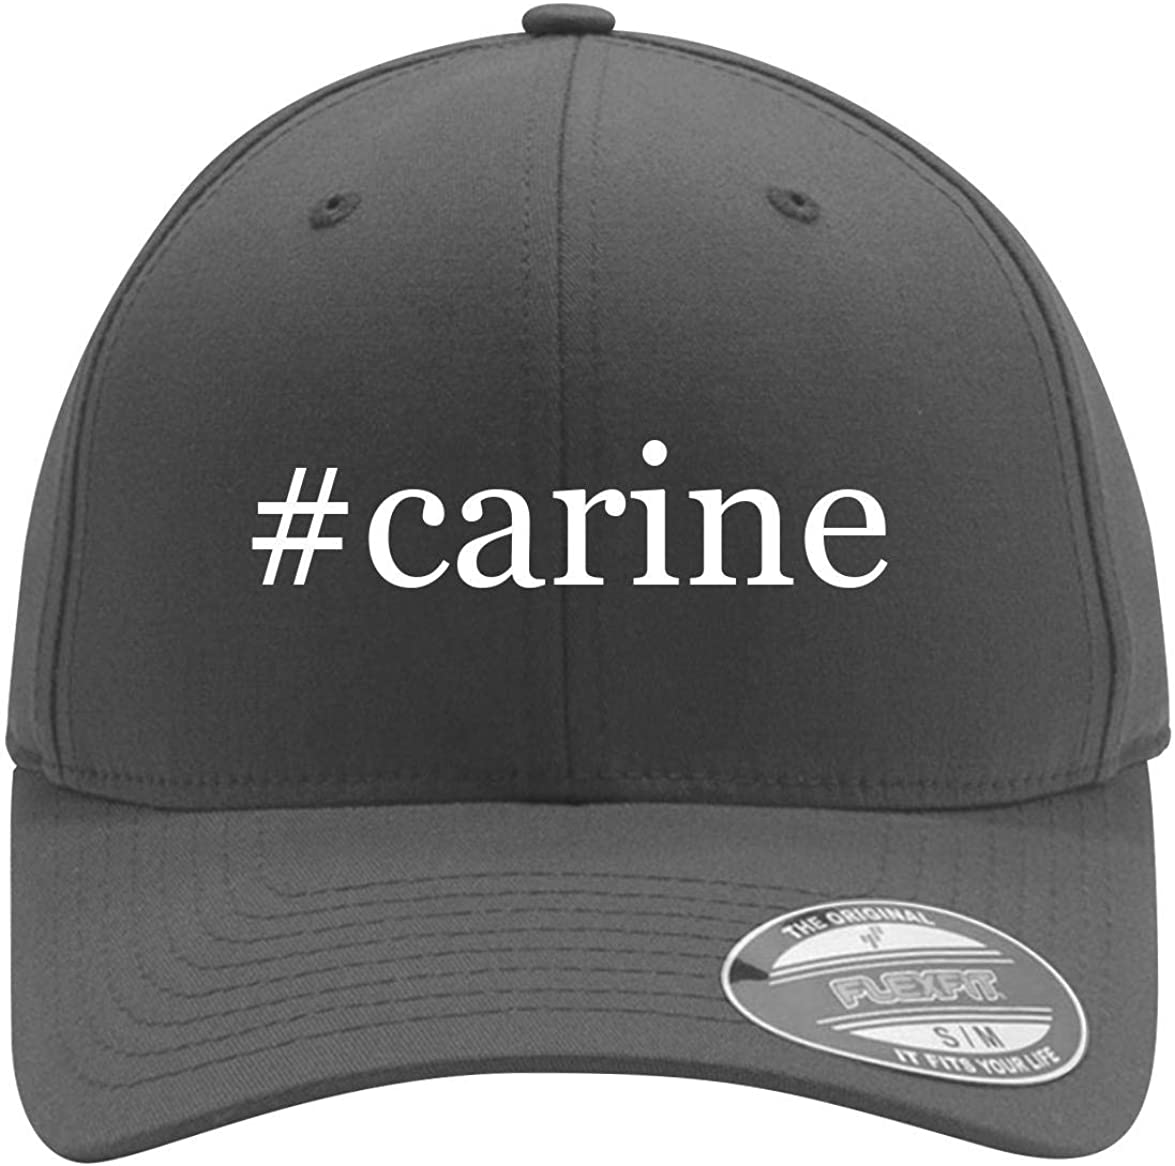 #carine - Adult Men's Hashtag Flexfit Baseball Hat Cap